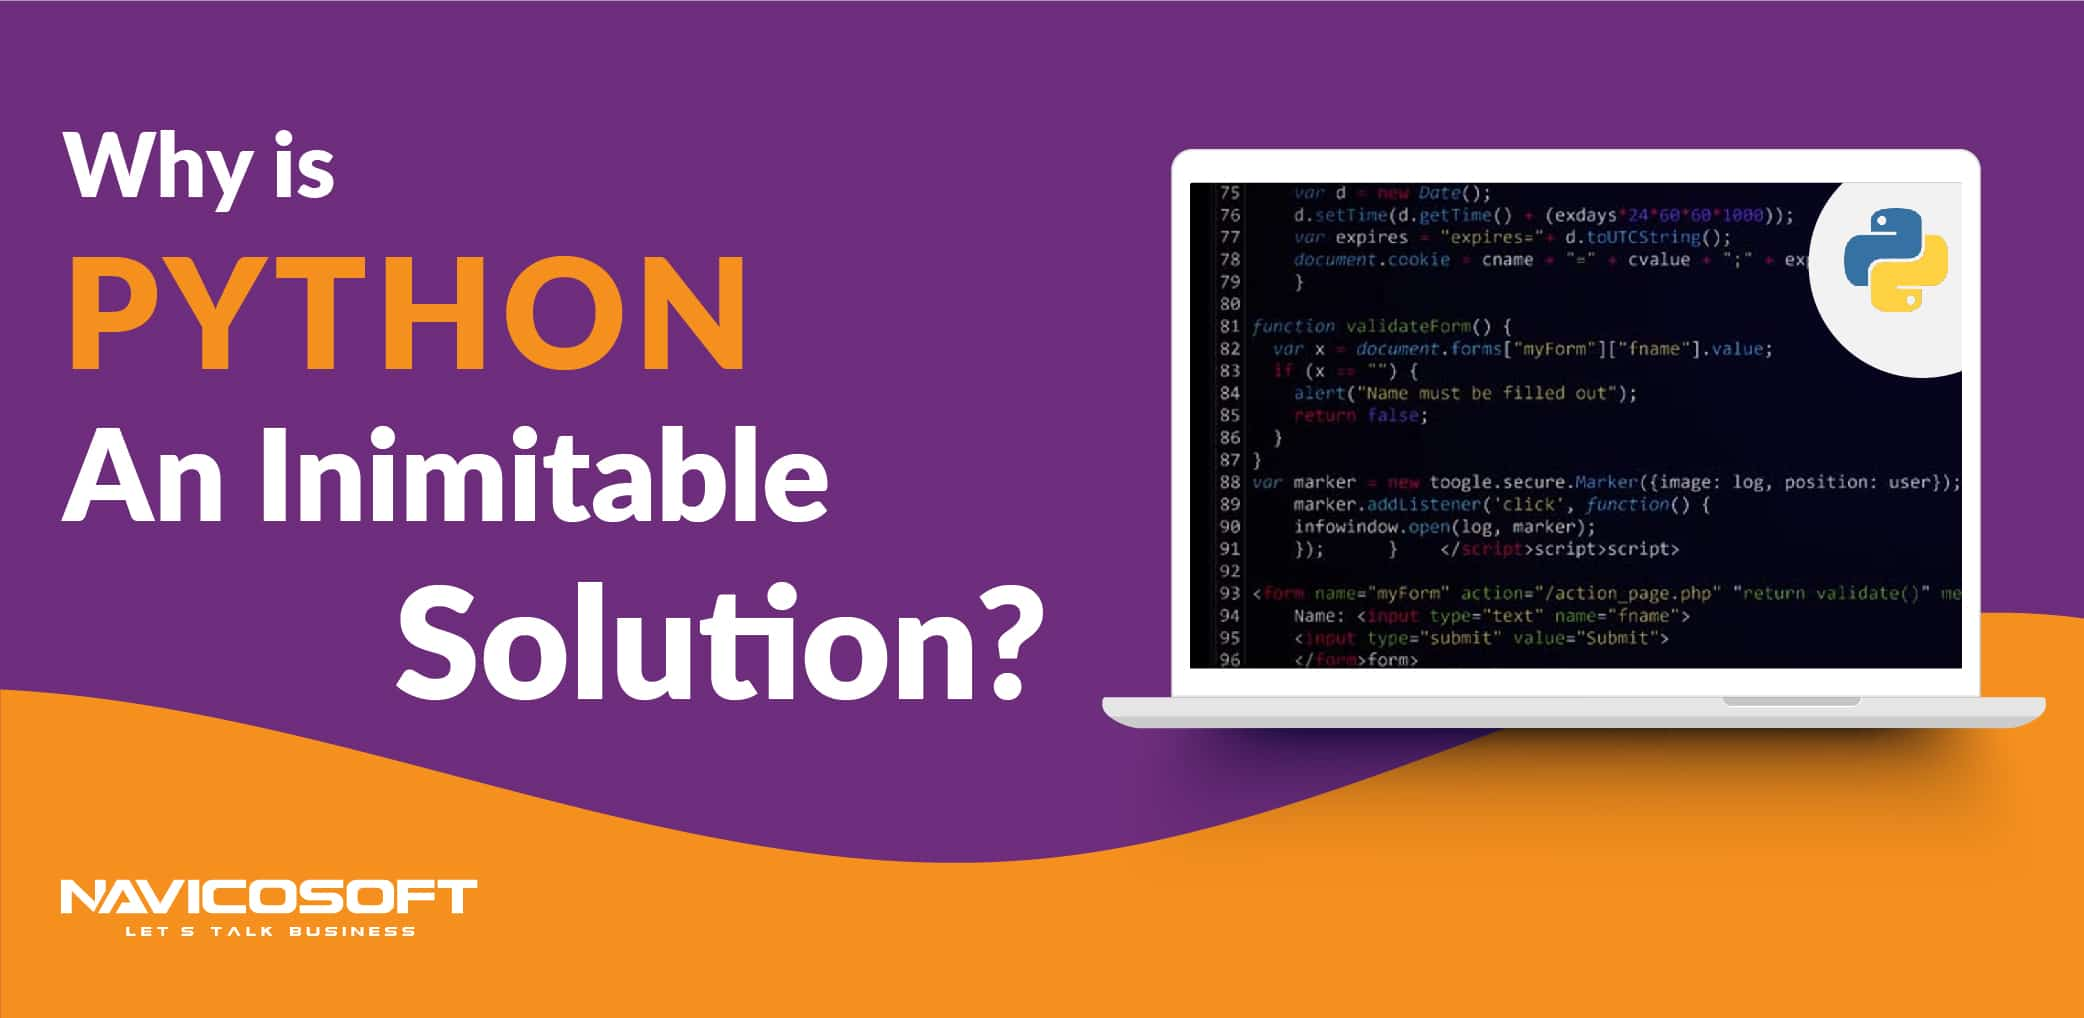 why-is-python-an-inimitable-solution? 